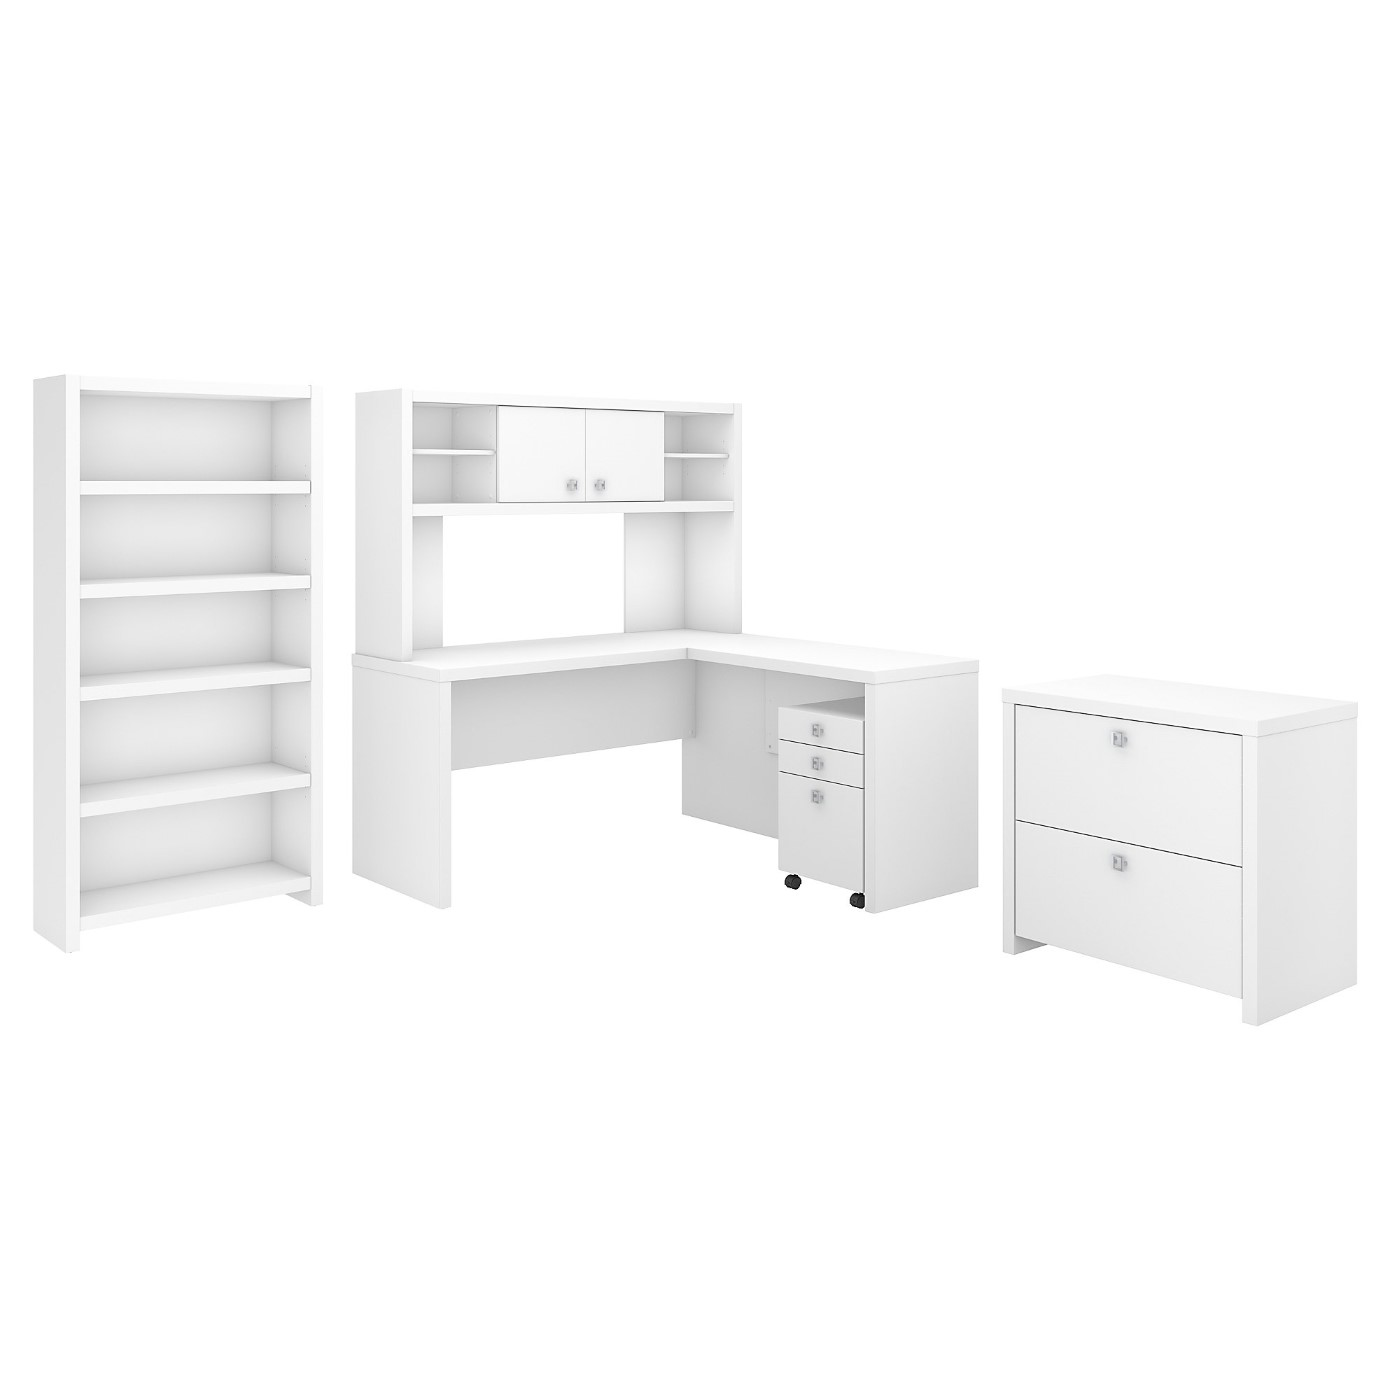 OFFICE BY KATHY IRELAND� ECHO L SHAPED DESK WITH HUTCH, BOOKCASE AND FILE CABINETS. FREE SHIPPING